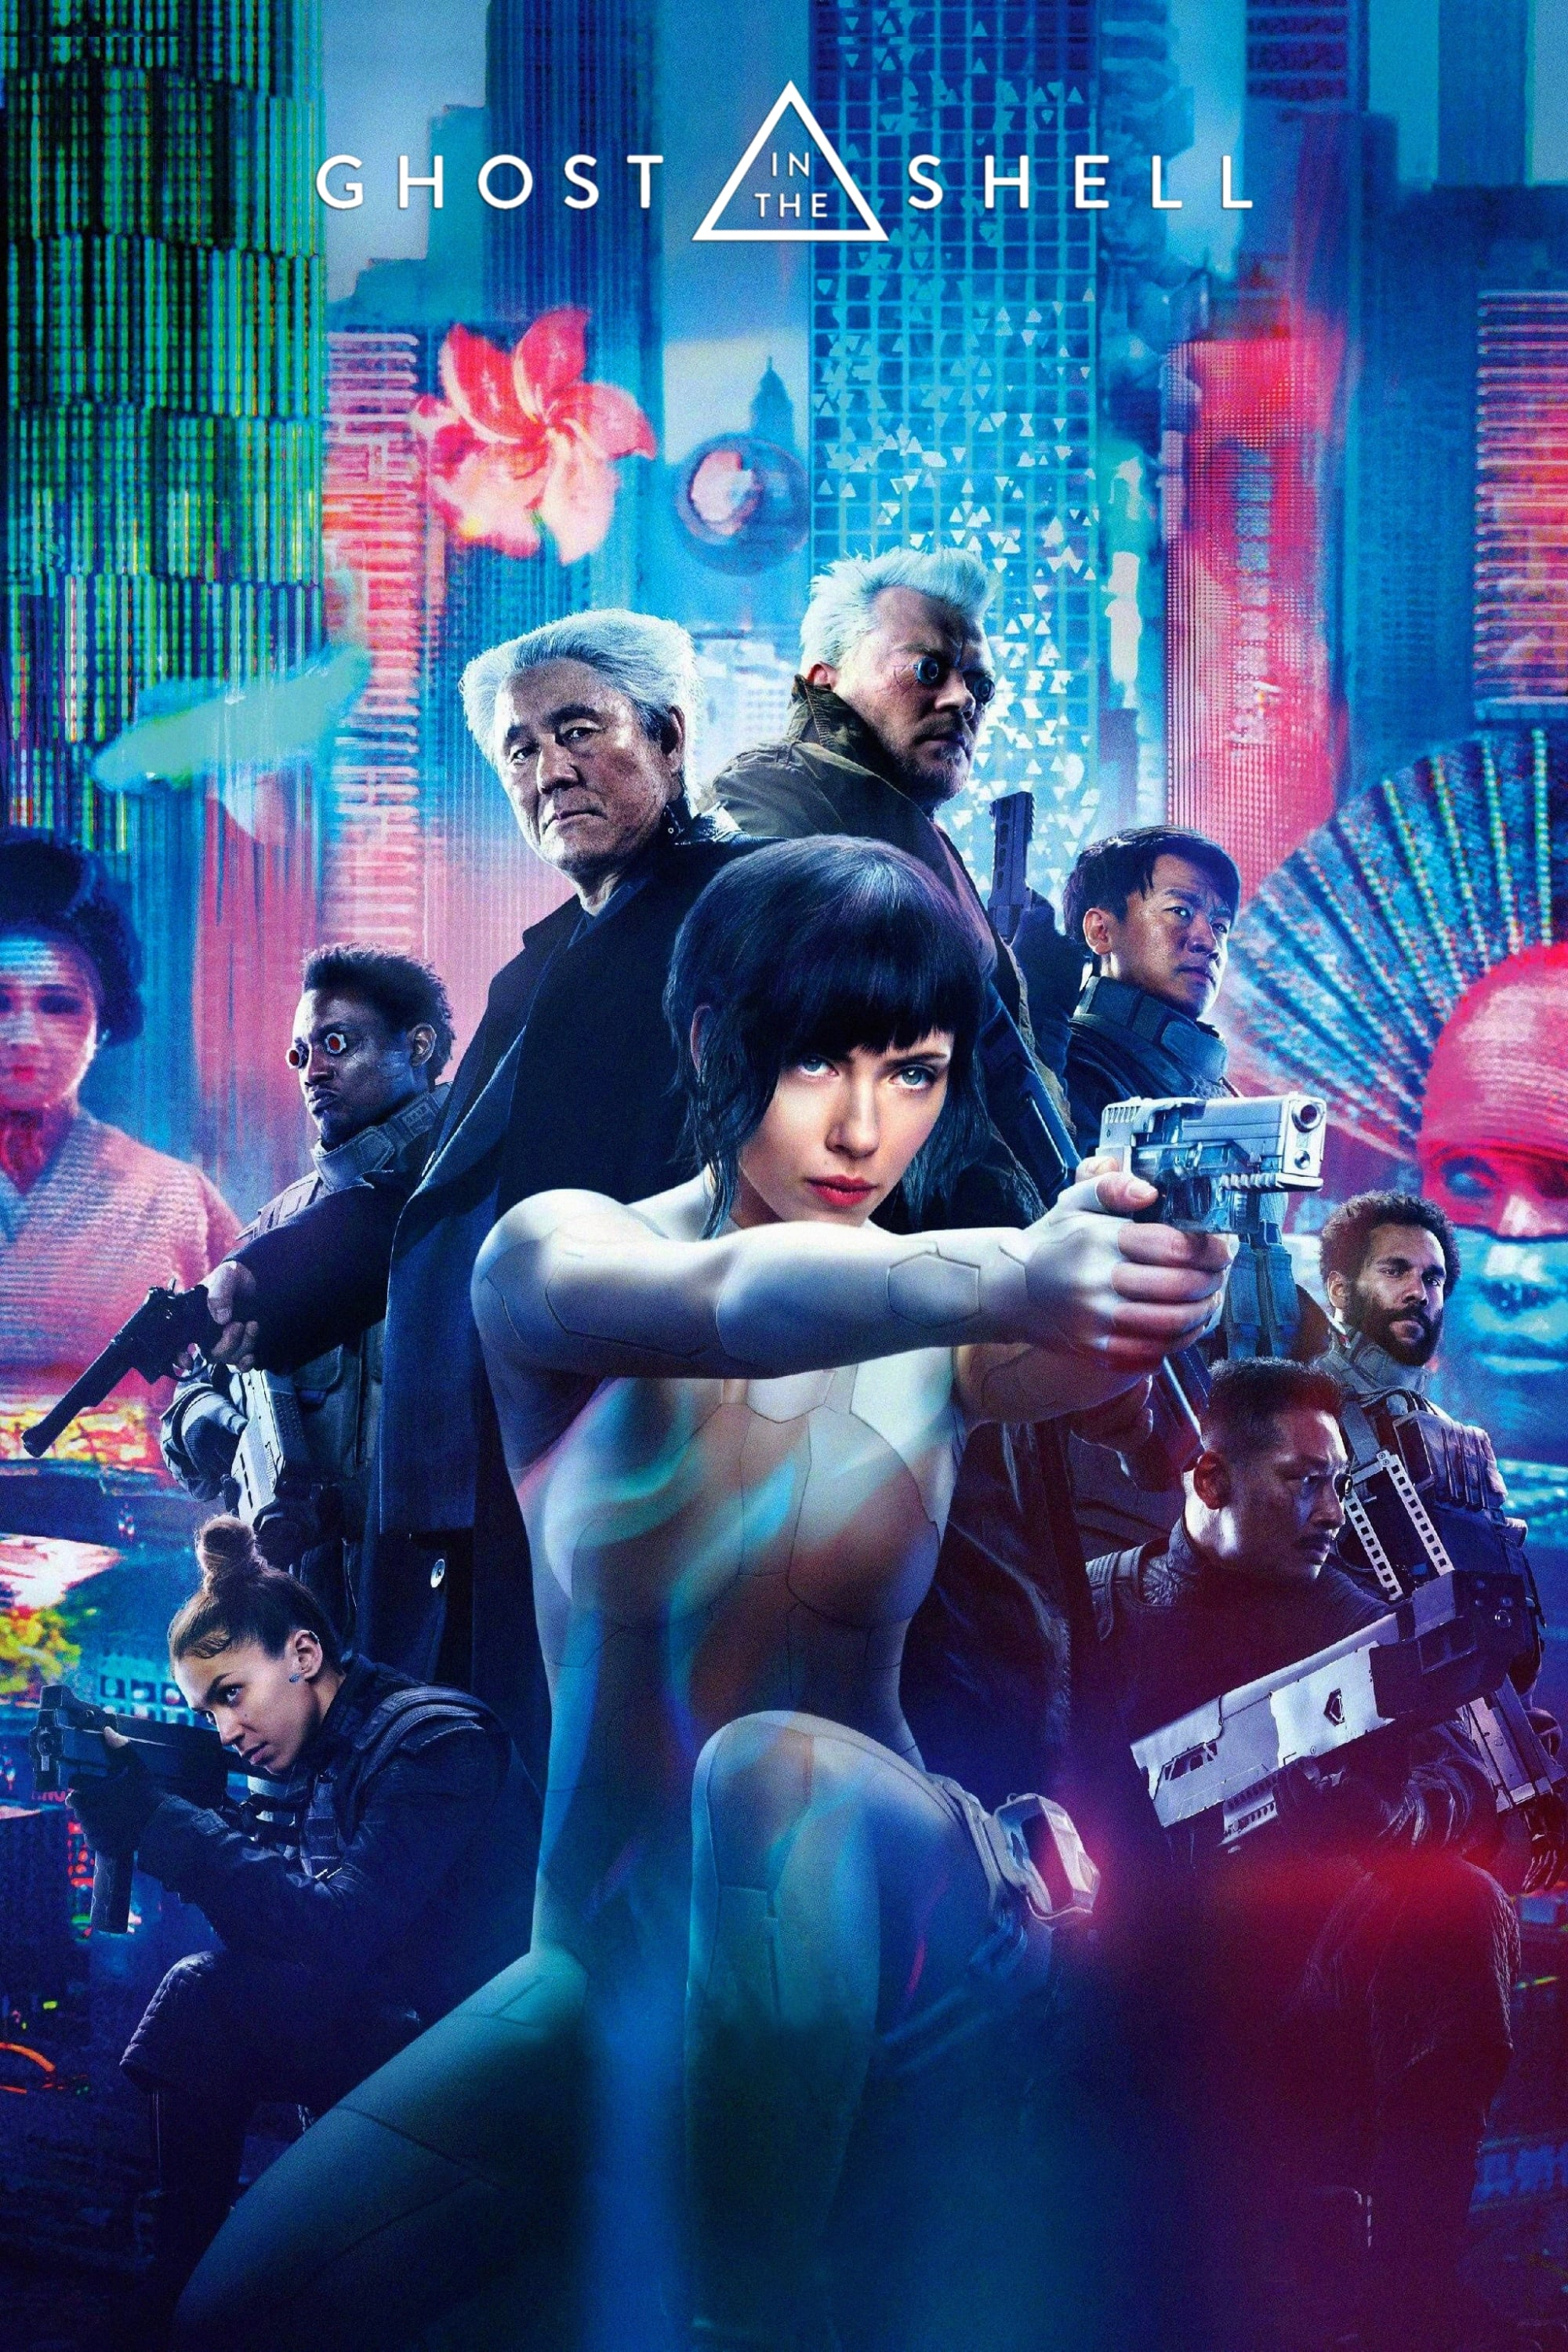 ghost in the shell ganzer film deutsch